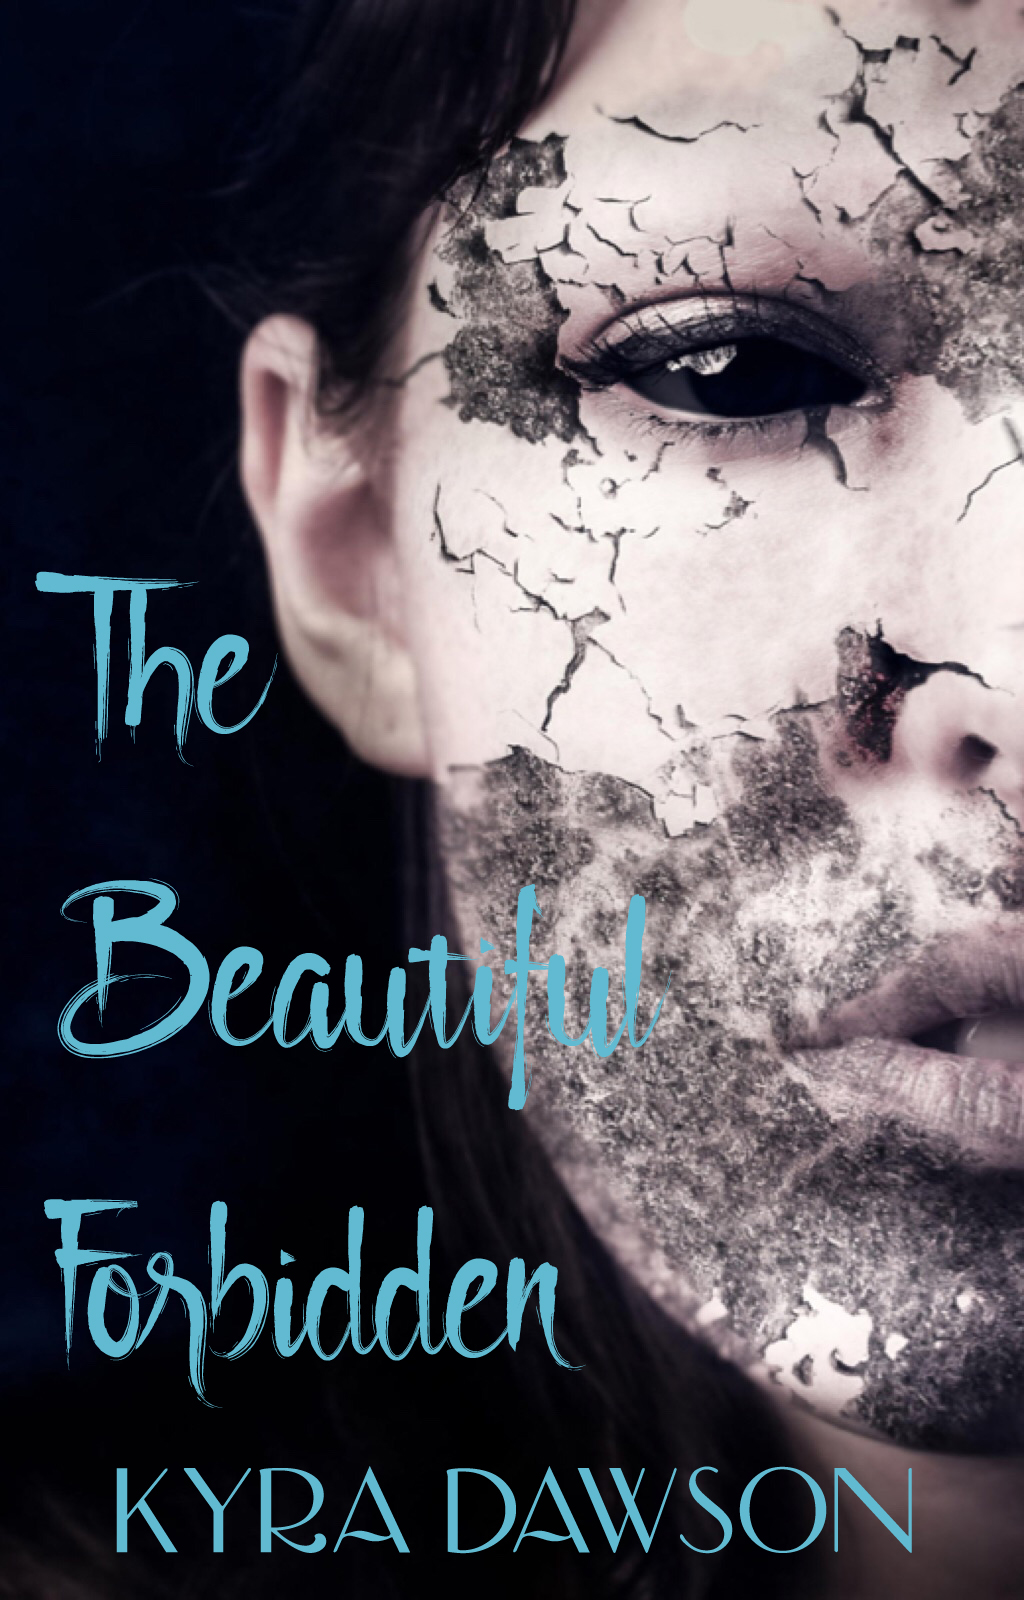 the-beautiful-forbidden-by-kyra-dawson-book-cover